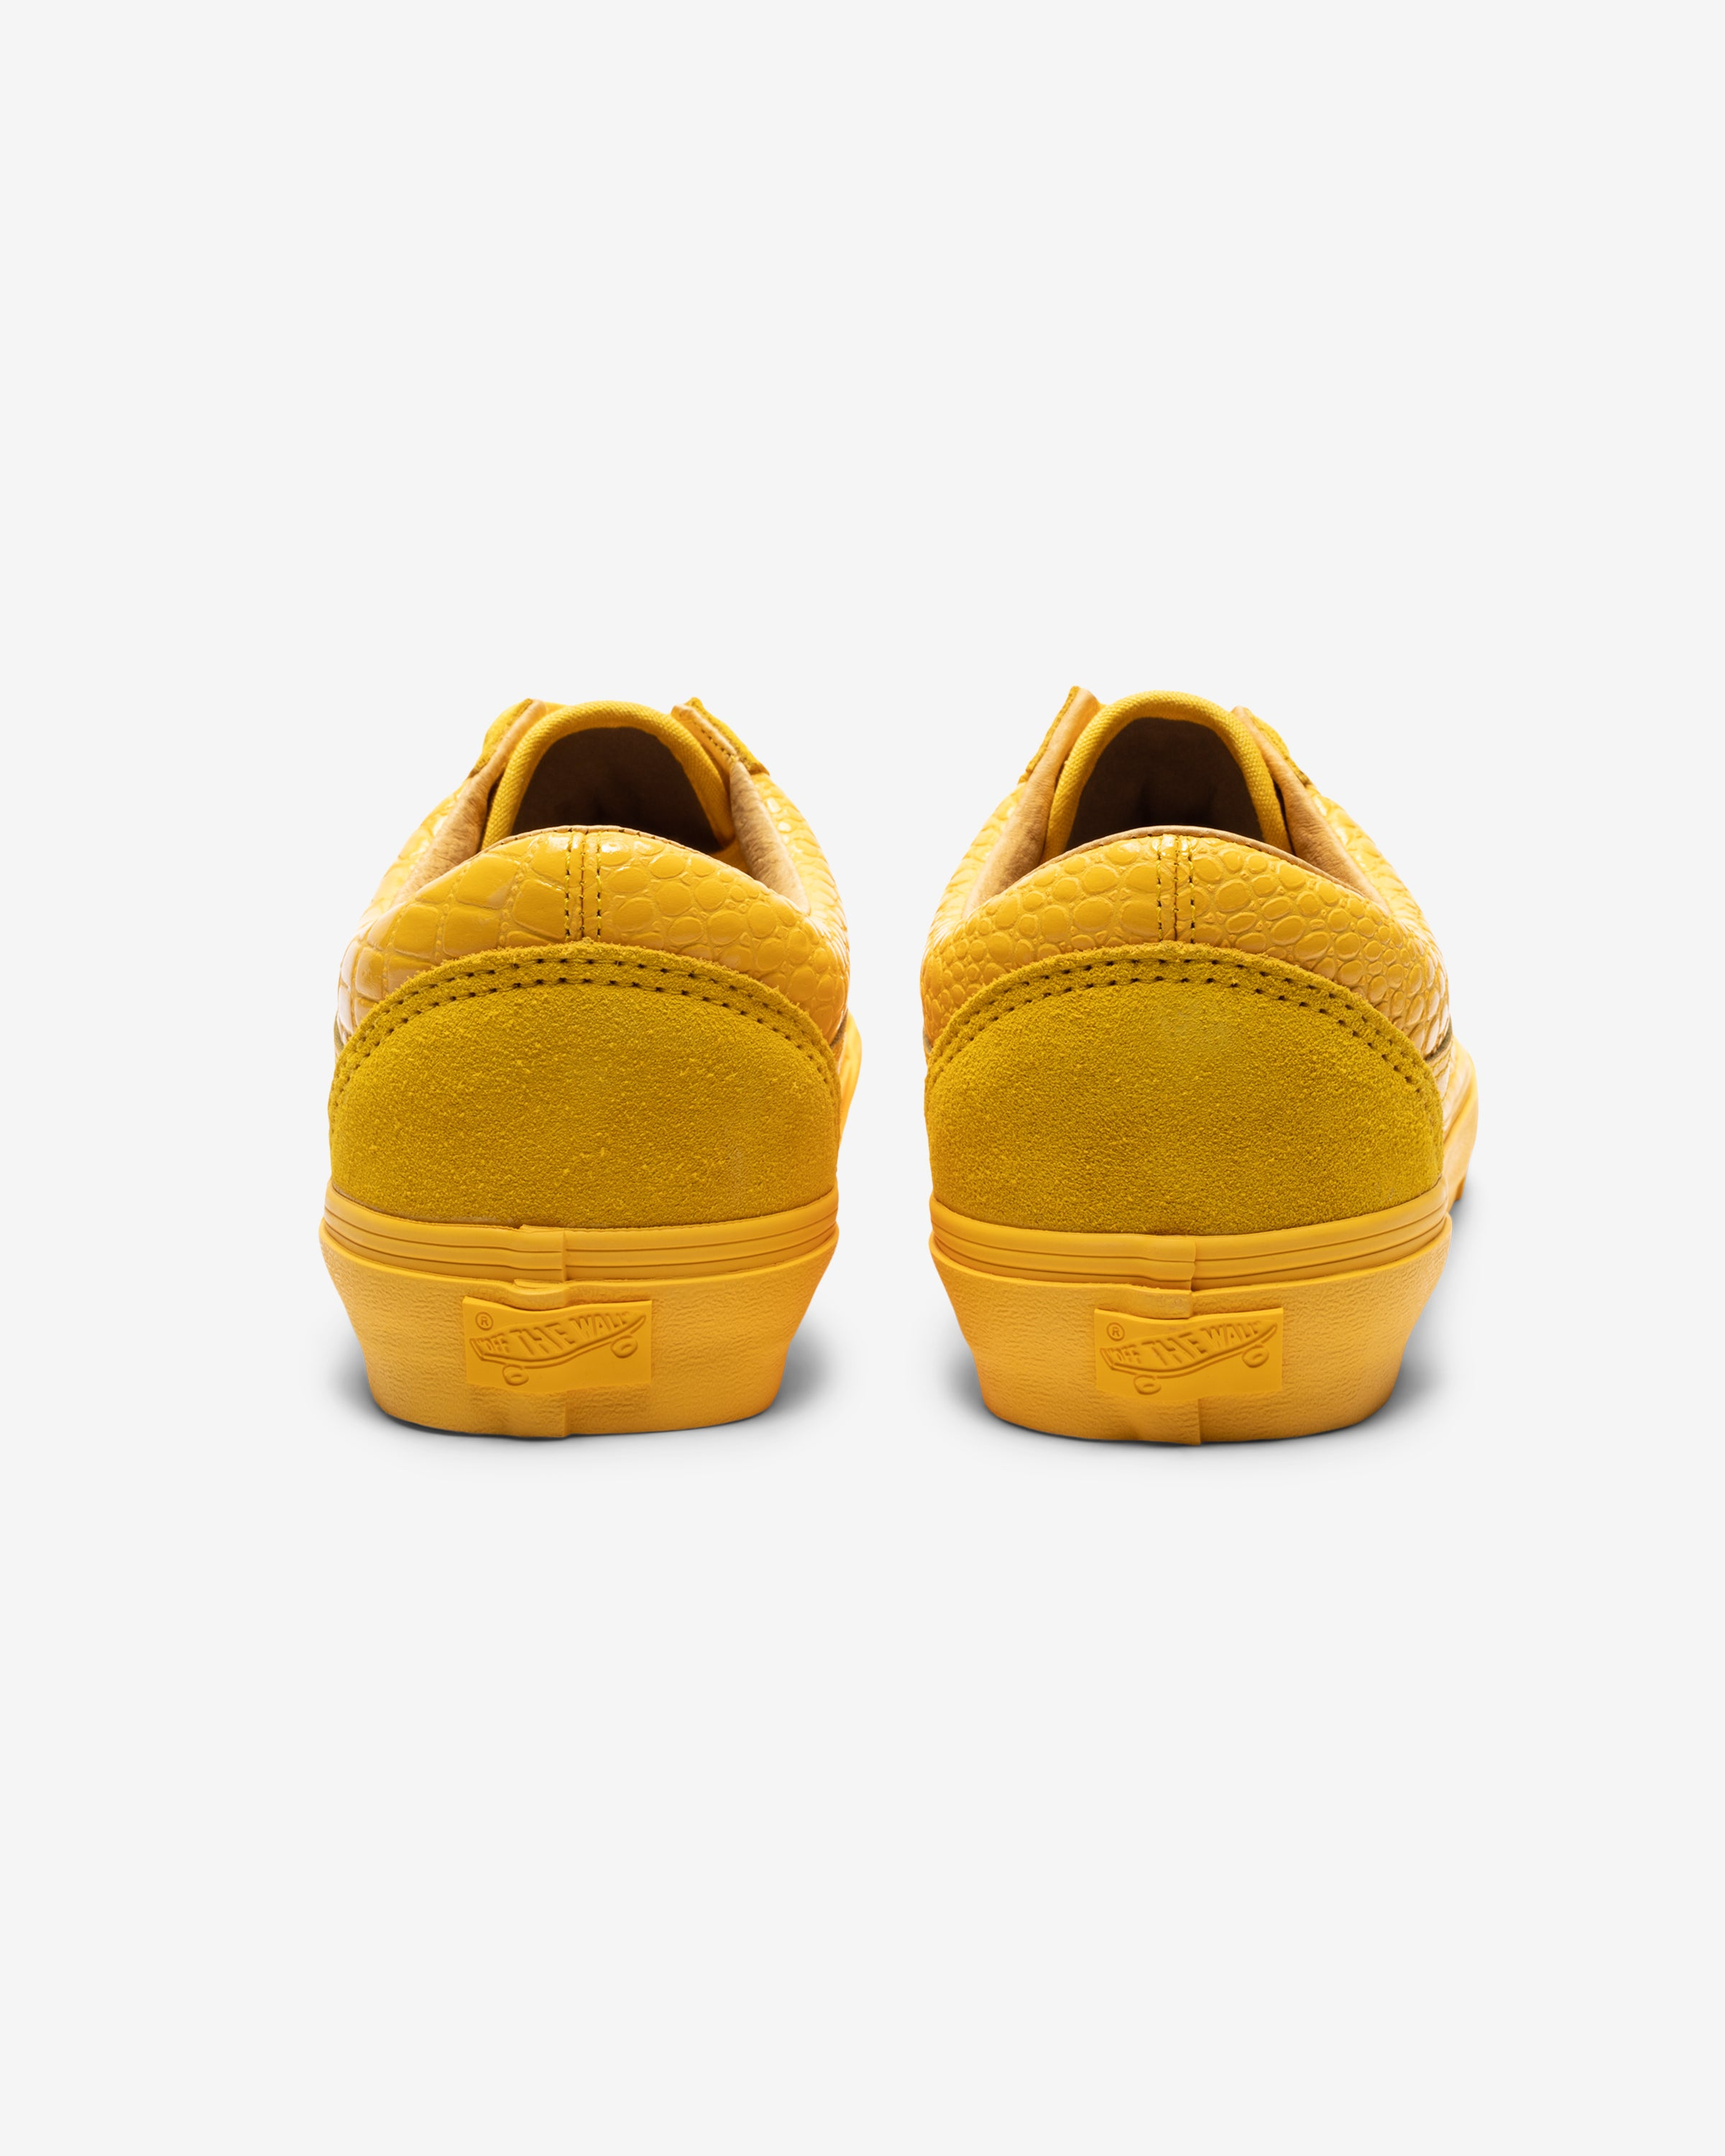 OLD SKOOL VLT LX (CROC SKIN) - LEMON